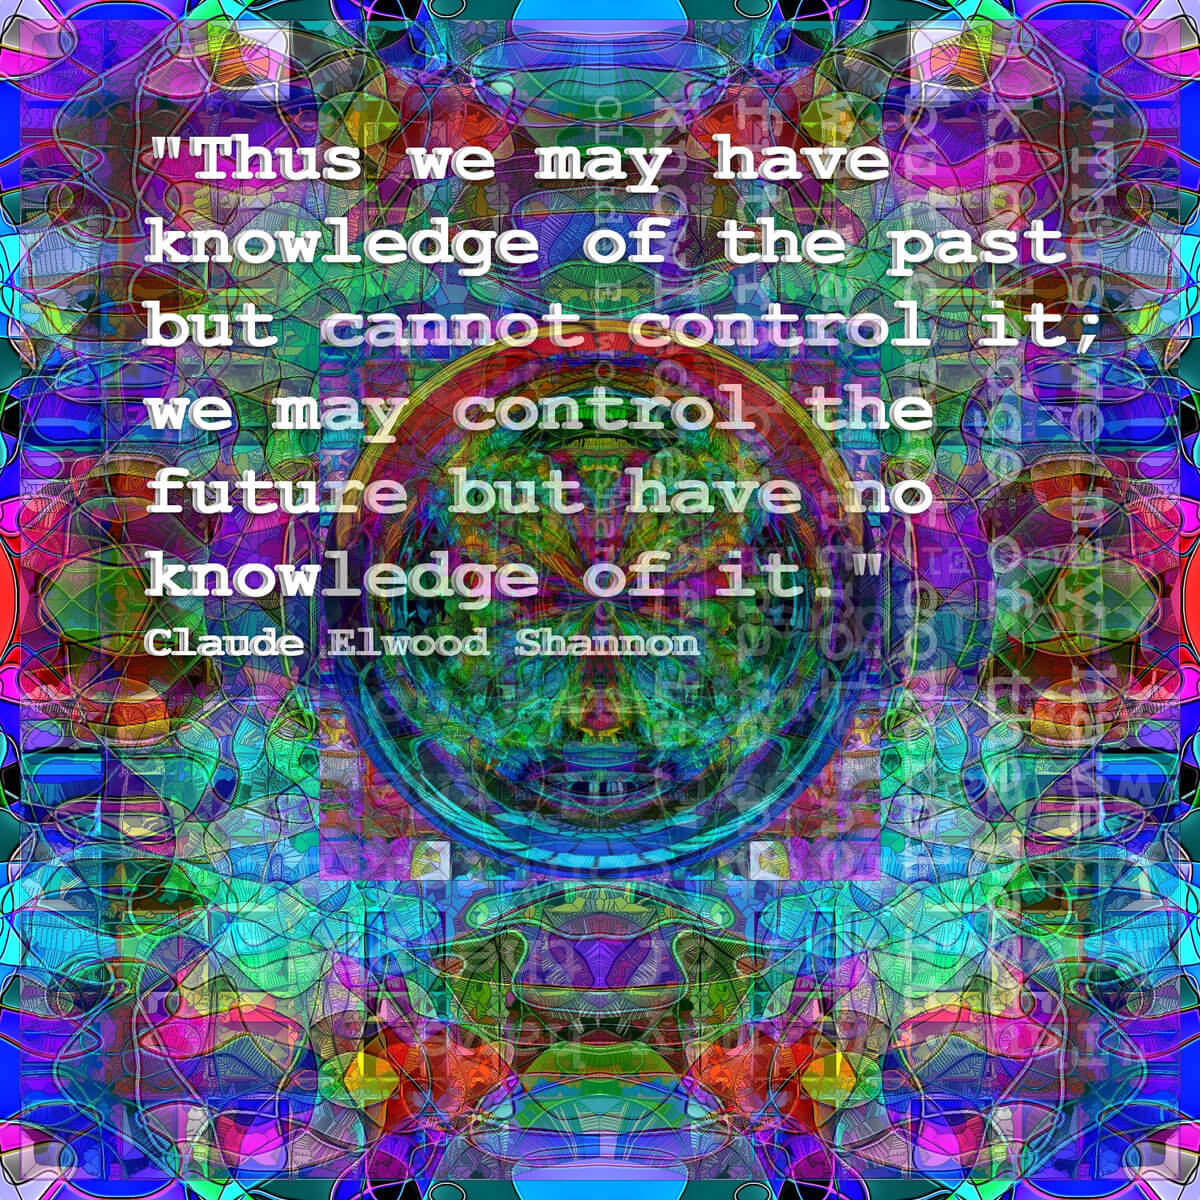 This duality can be pursued further and is related to a duality between past and future and the notions of control and knowledge. Thus we may have knowledge of the past but cannot control it; we may control the future but have no knowledge of it. ― Clause Elwood Shannon